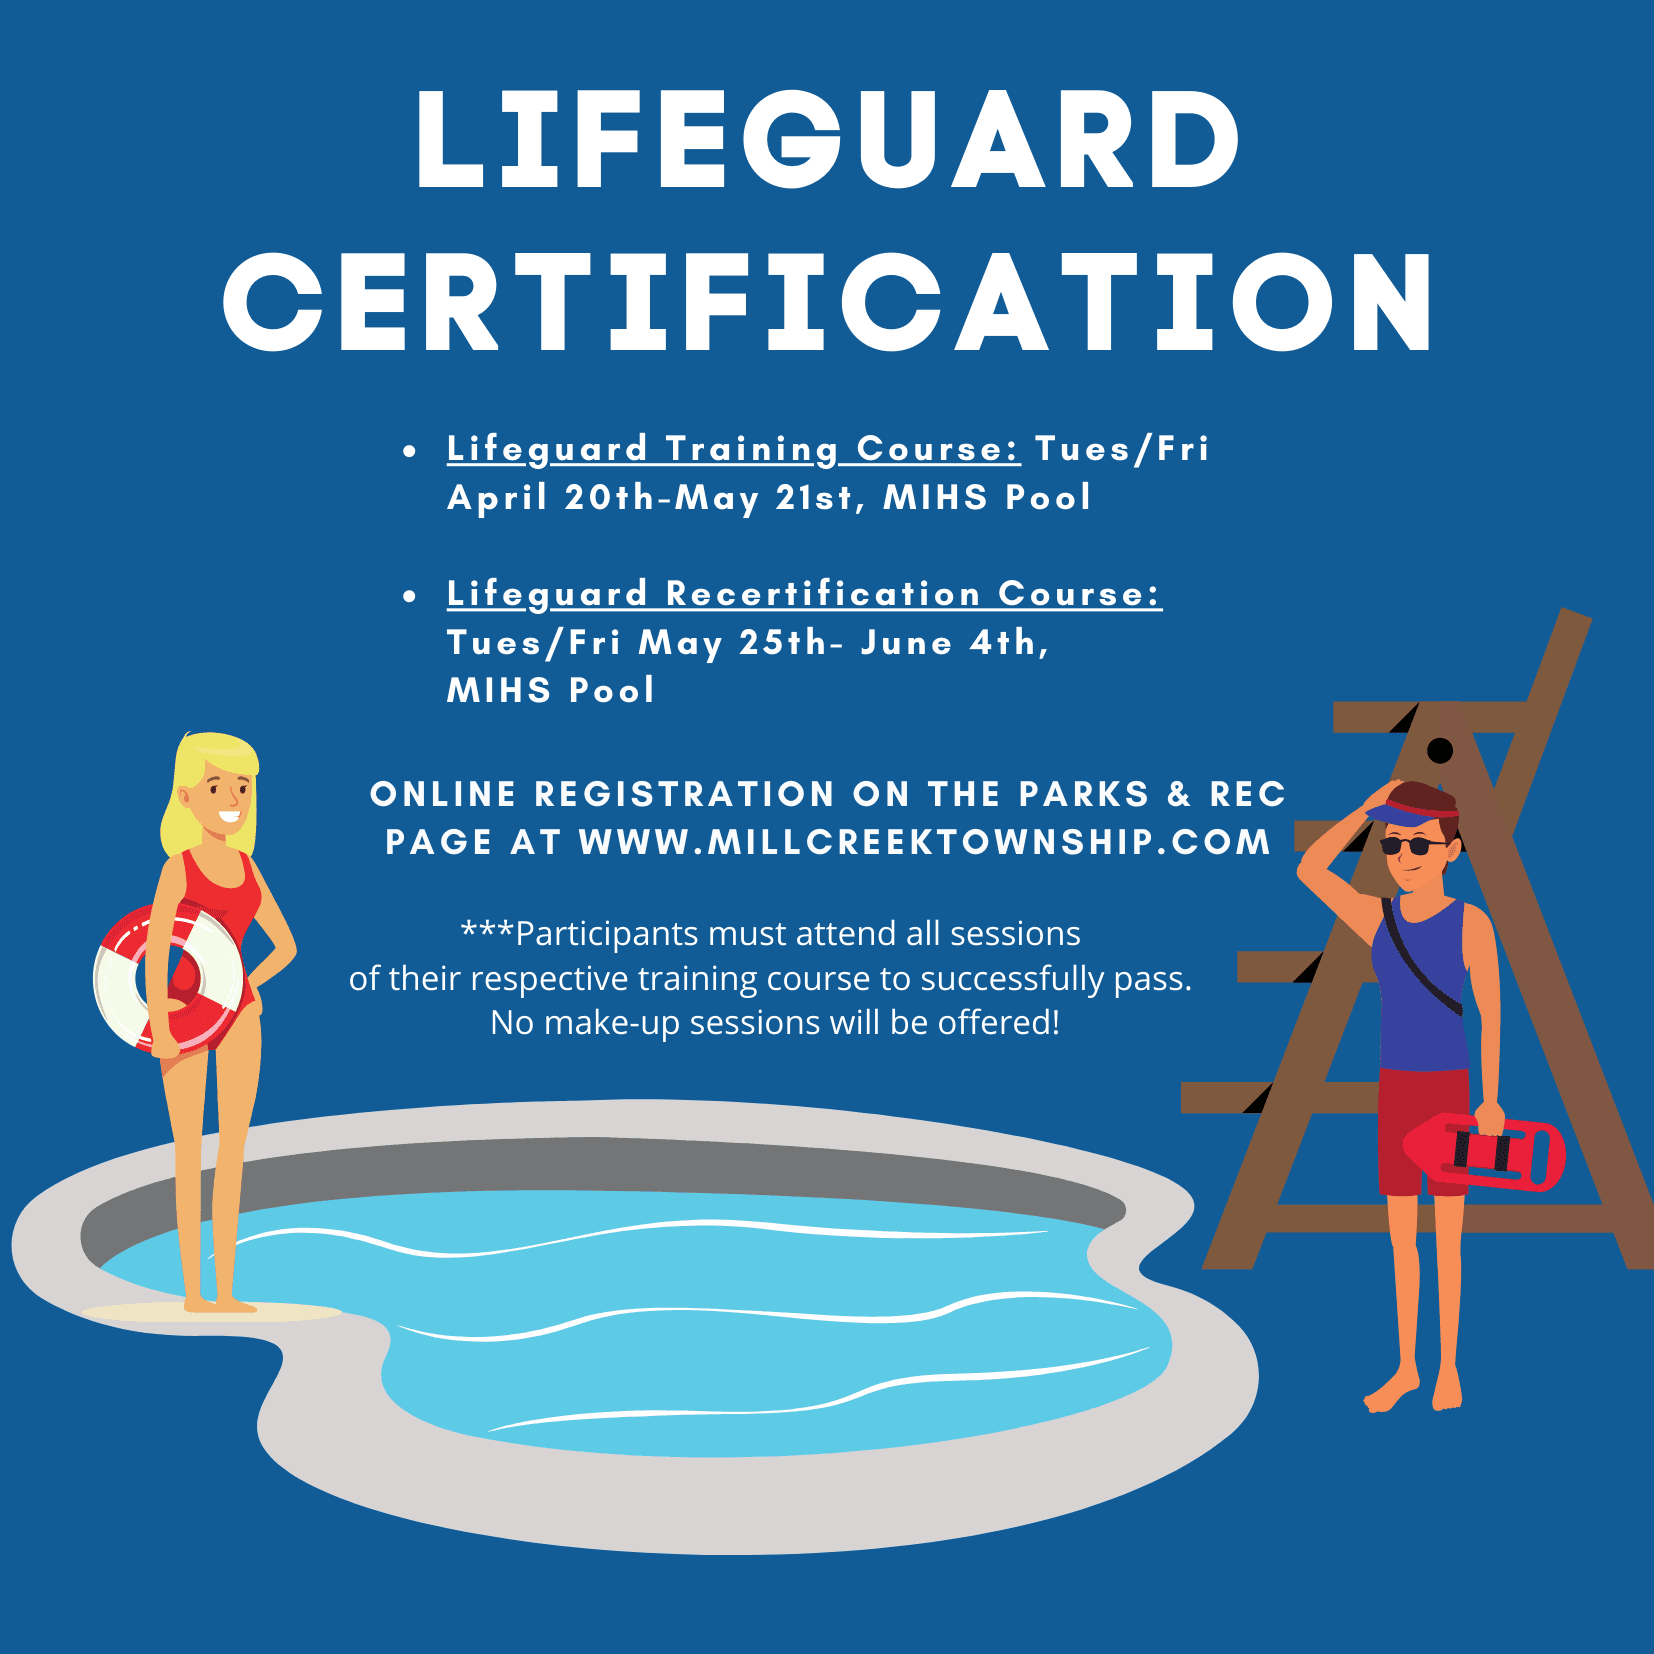 Lifeguard Certification